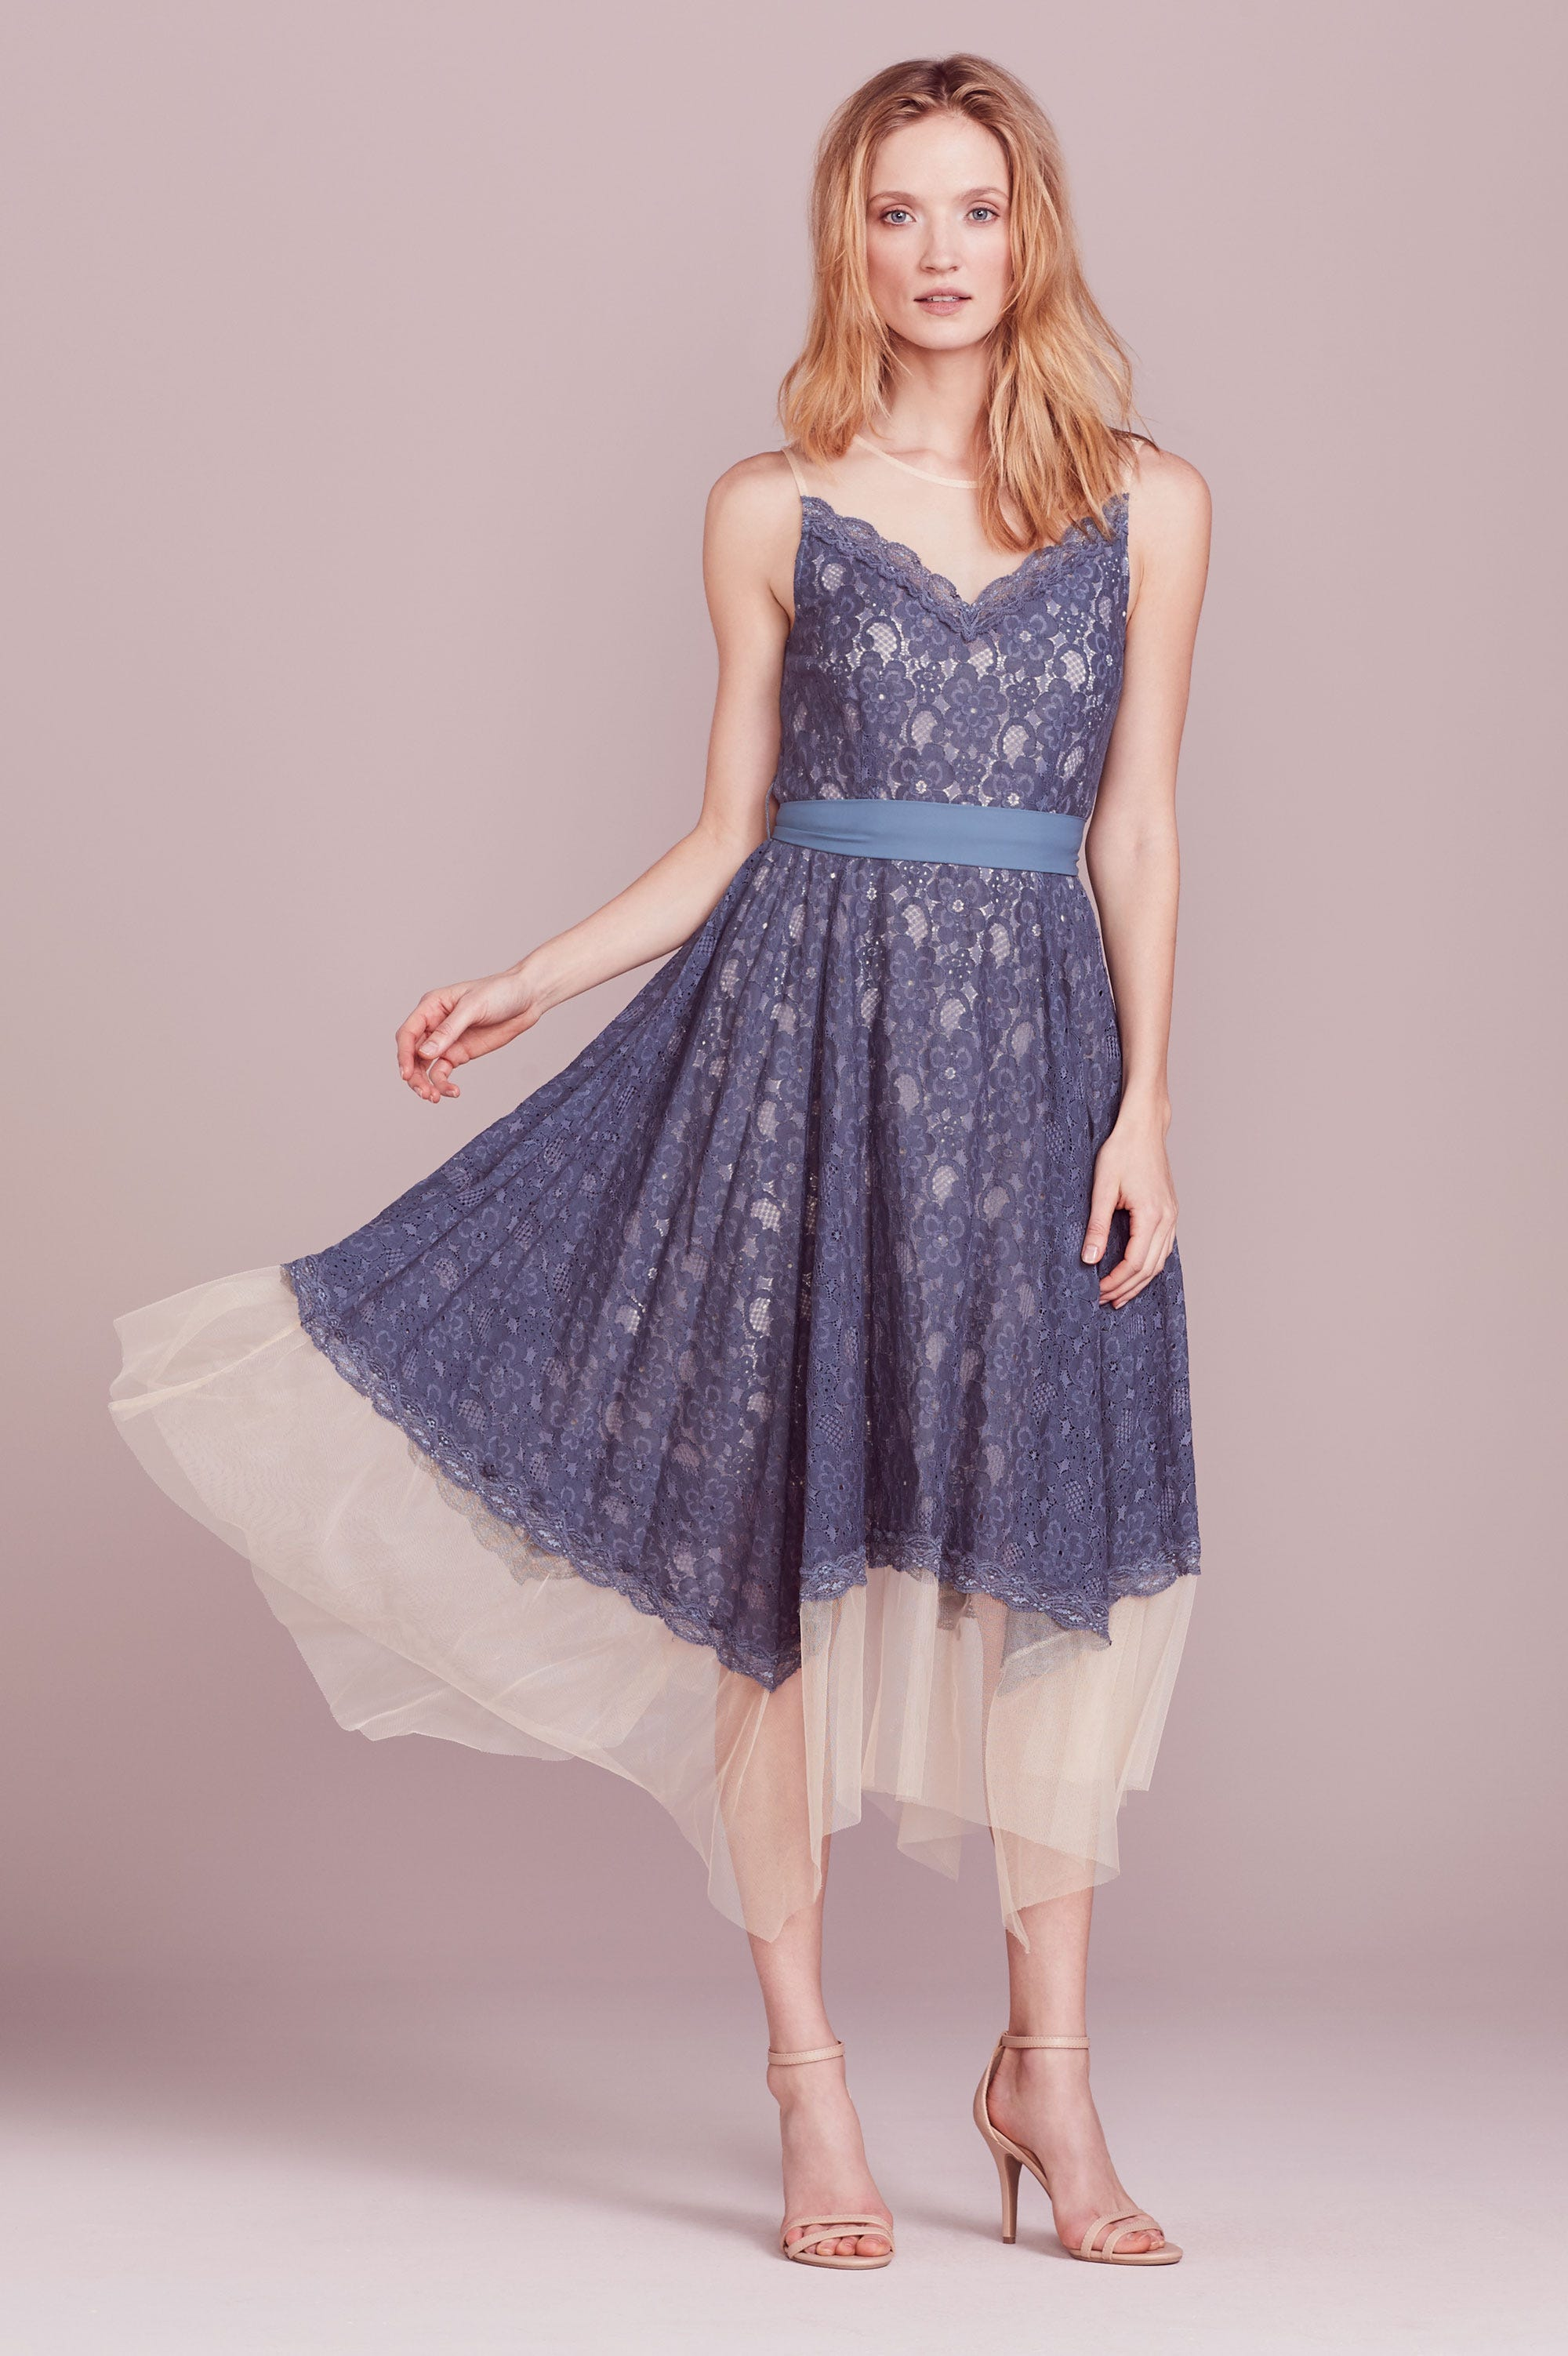 048a5f33398 Plus Size Prom Dresses Kohls - Dress Foto and Picture